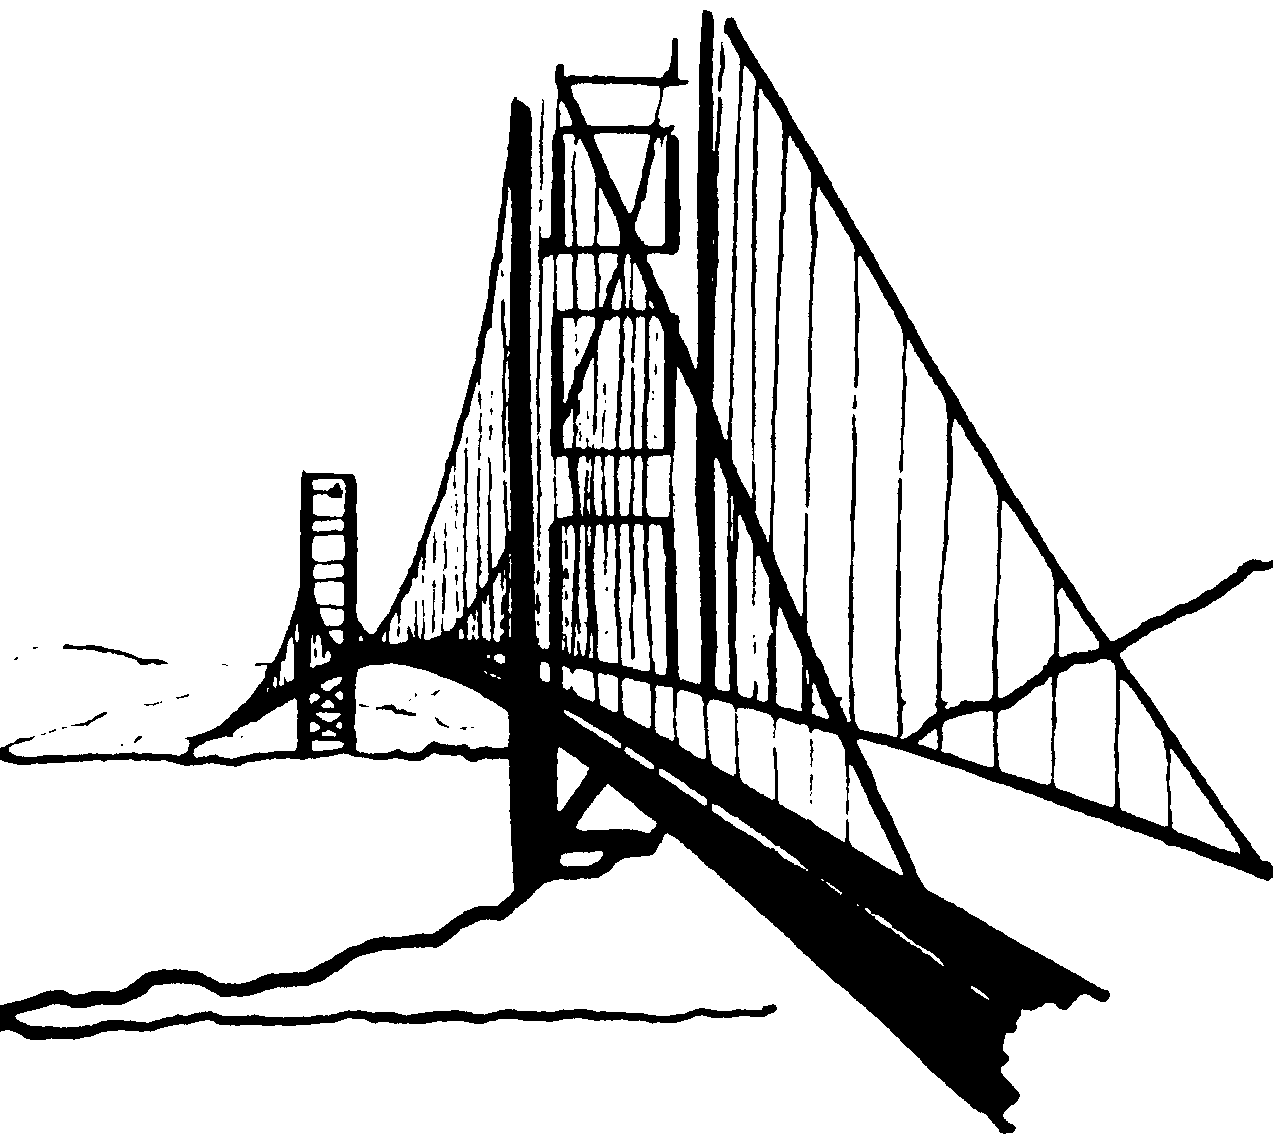 Broken Bridge clipart black and white Free Gate gate%20clipart%20black%20and%20white White Panda